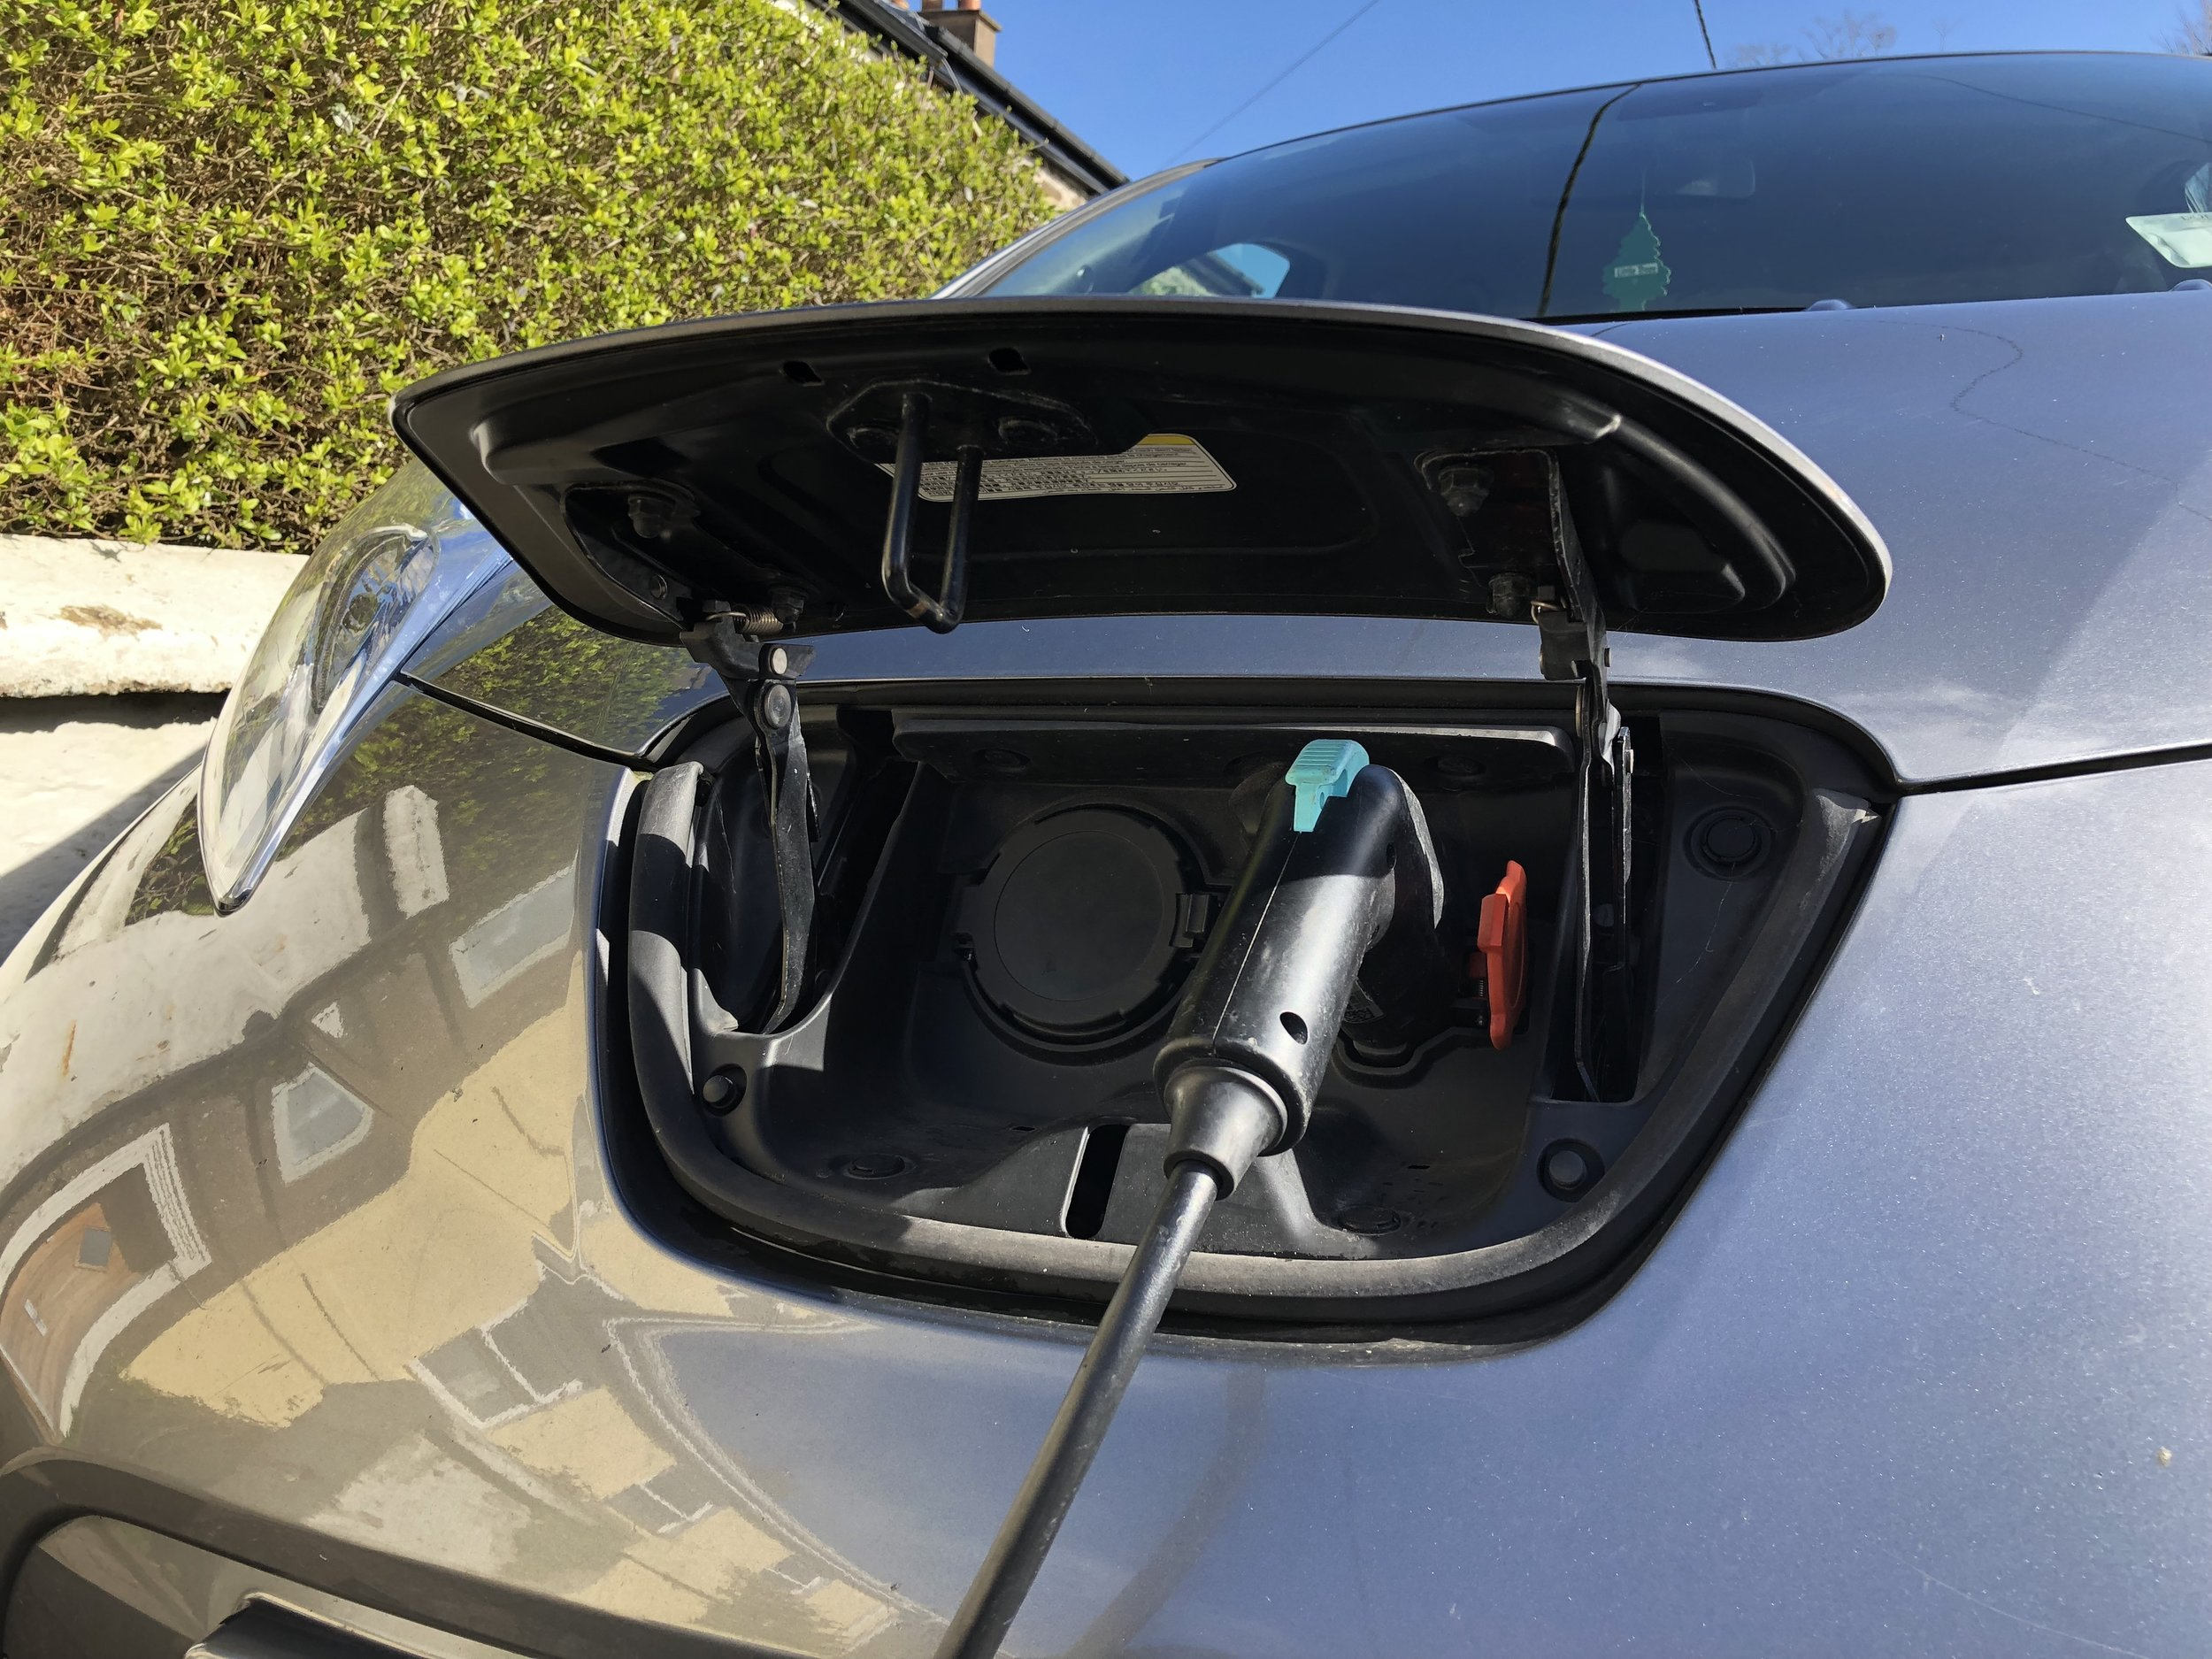 indeemo-mobile-diary-study-using-a-mobile-diary-study-app-to-understand-the-user-experience-of-electric-vehicle-owners